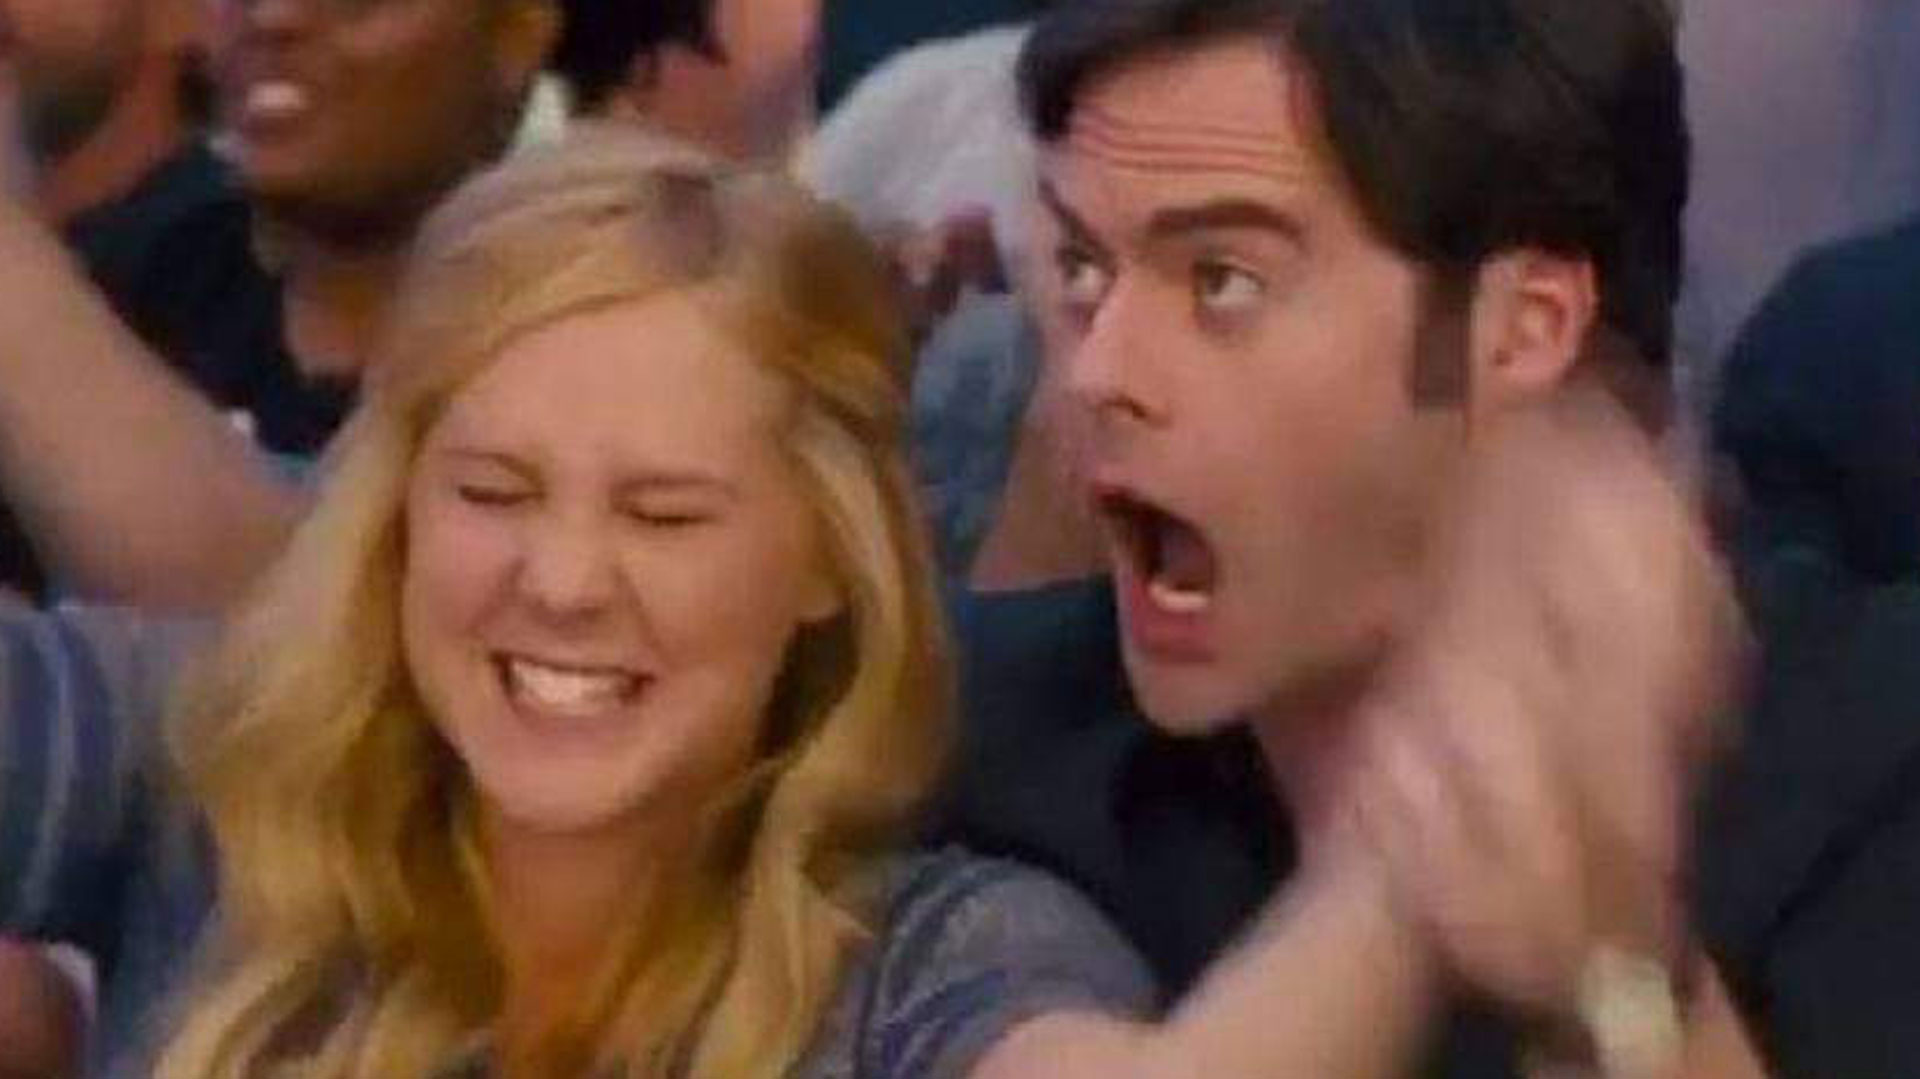 Bloopers that were funnier than the actual movie